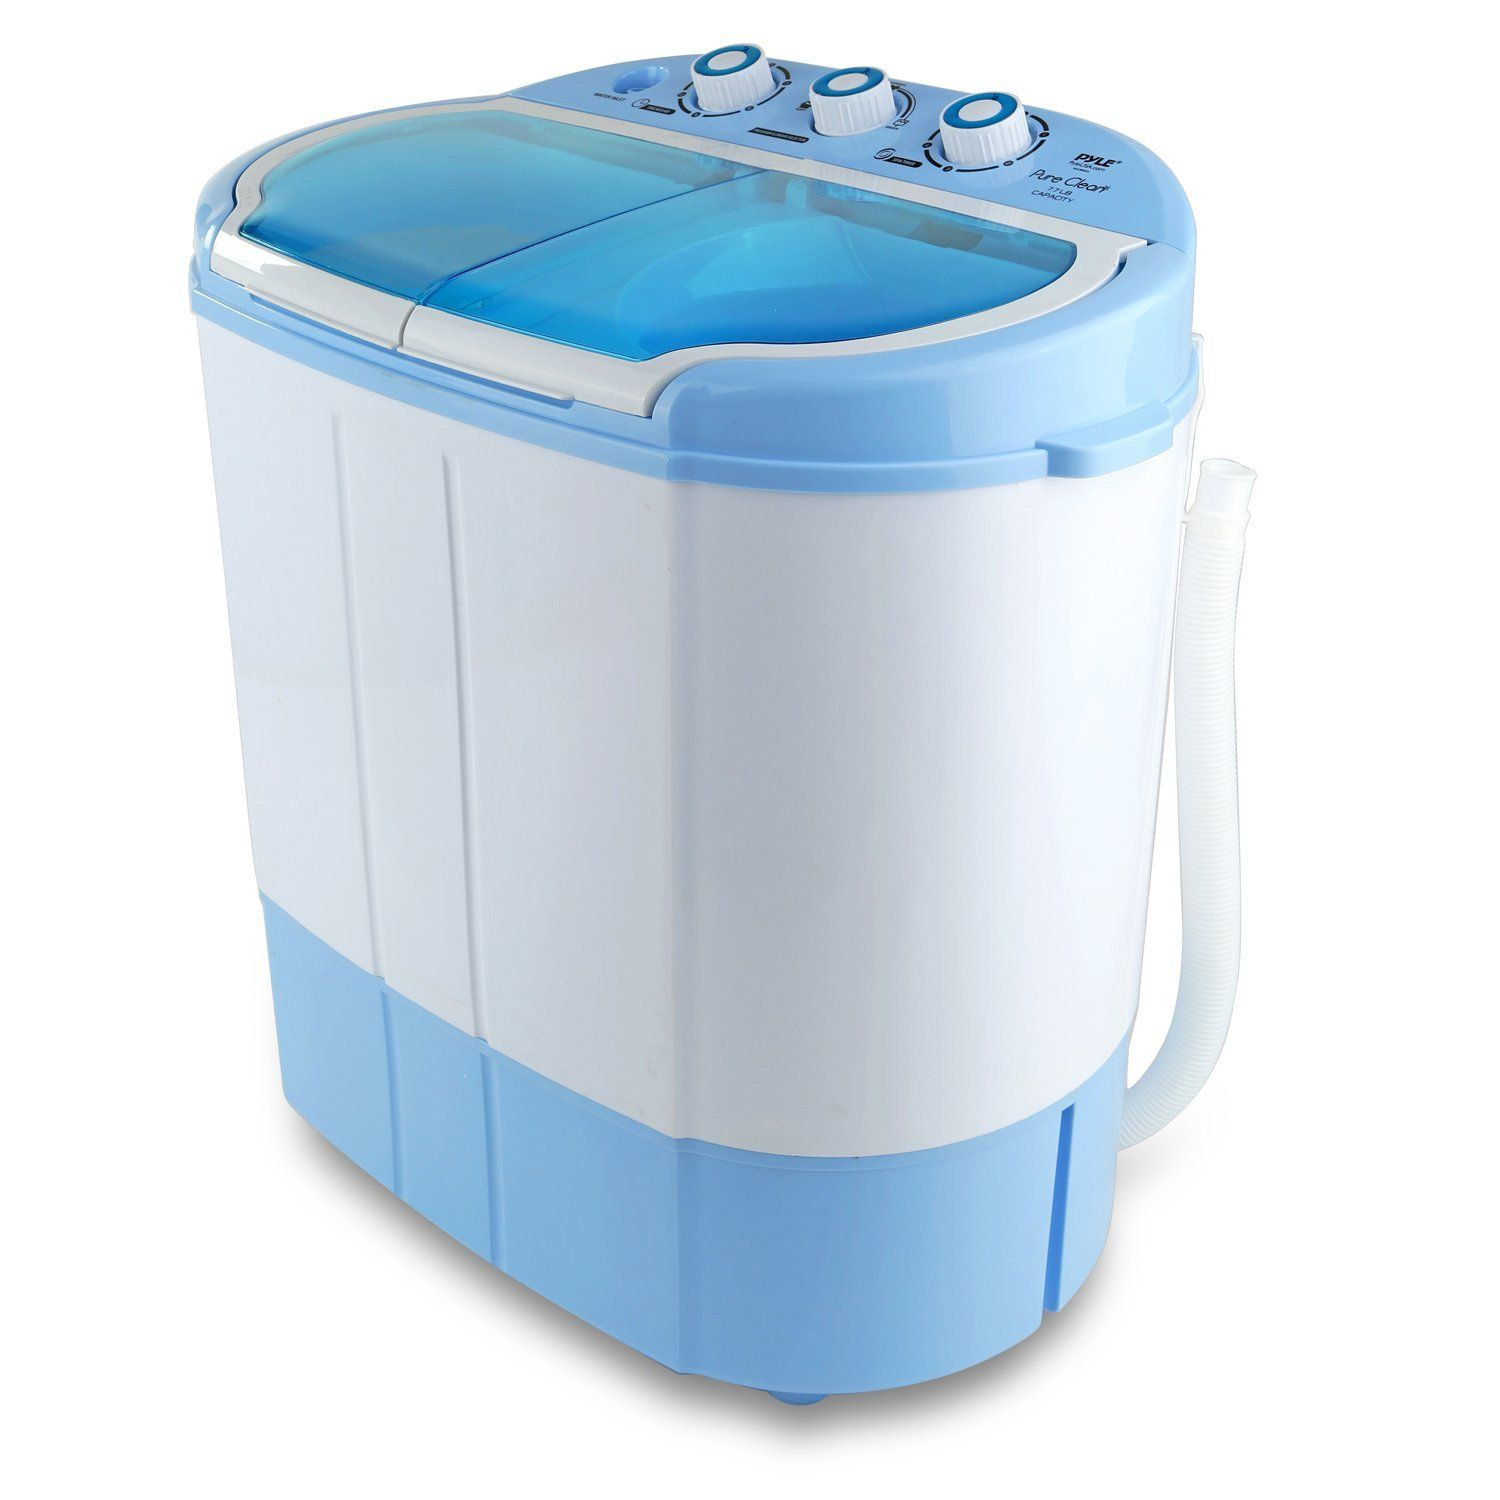 electric portable washing machine spin dryer best offer portable